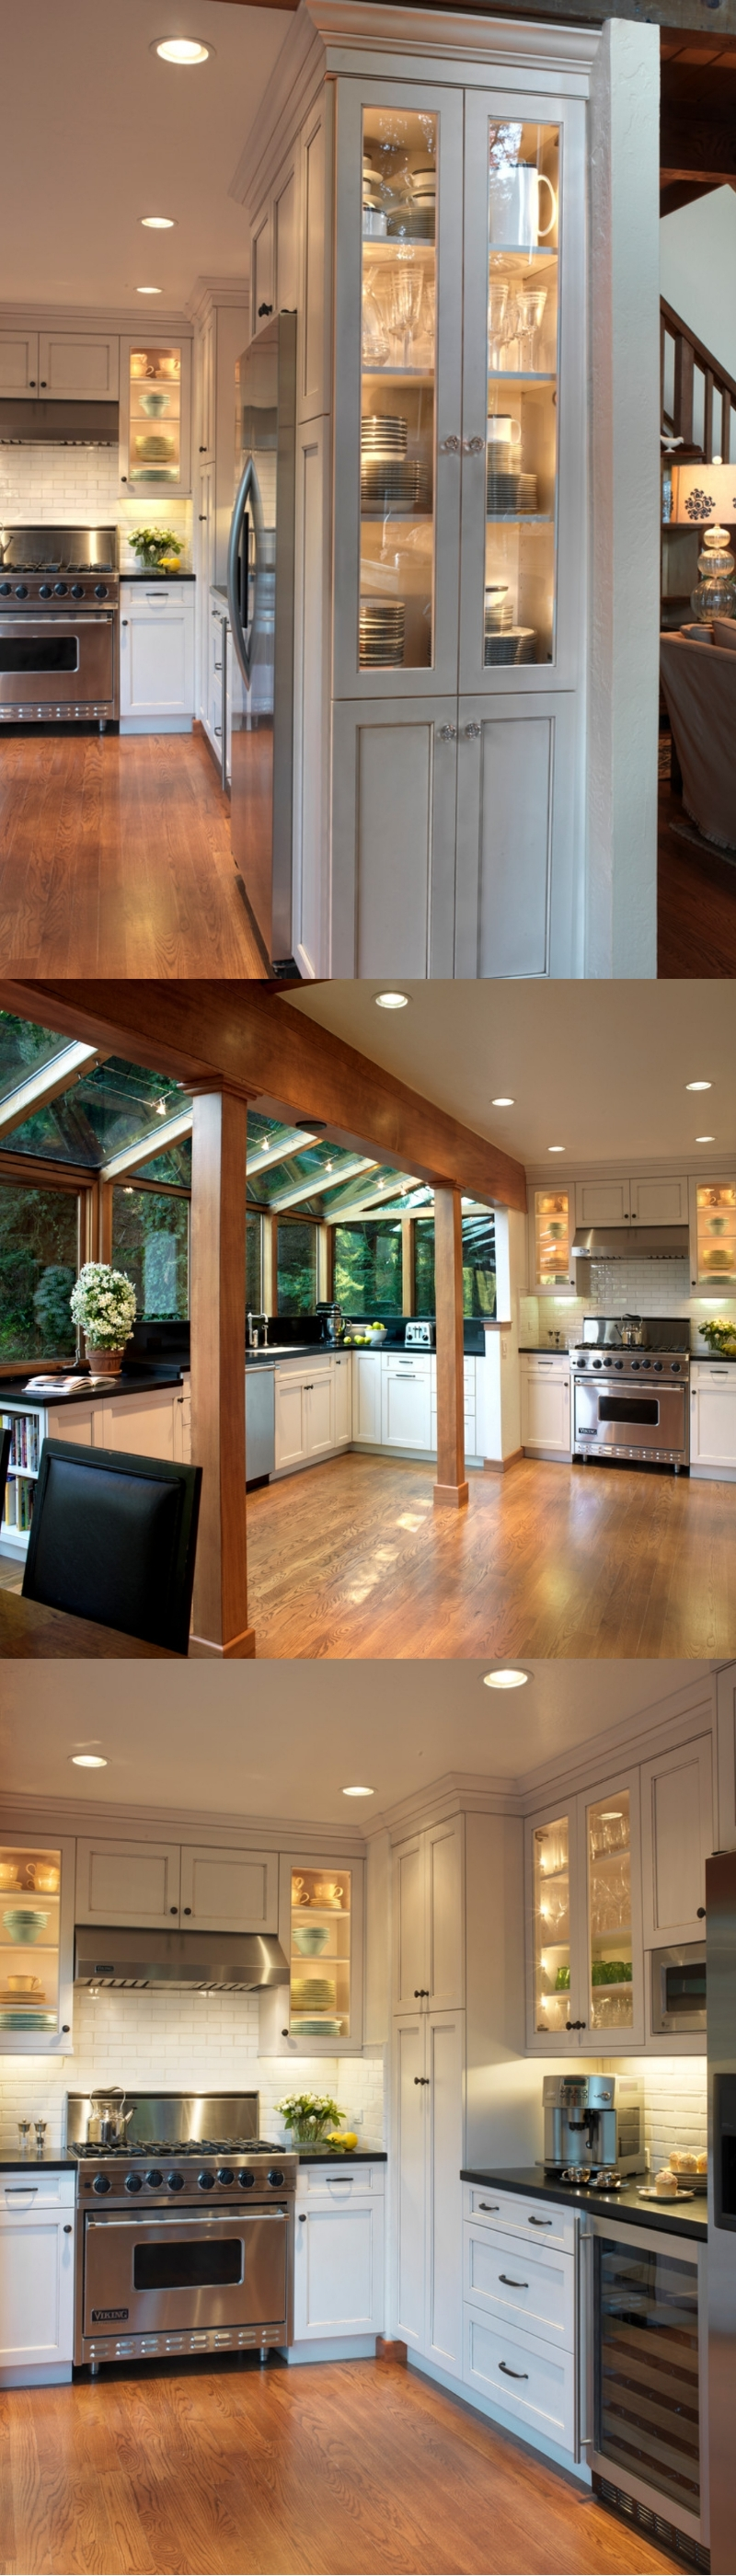 kitchen hood wood designs